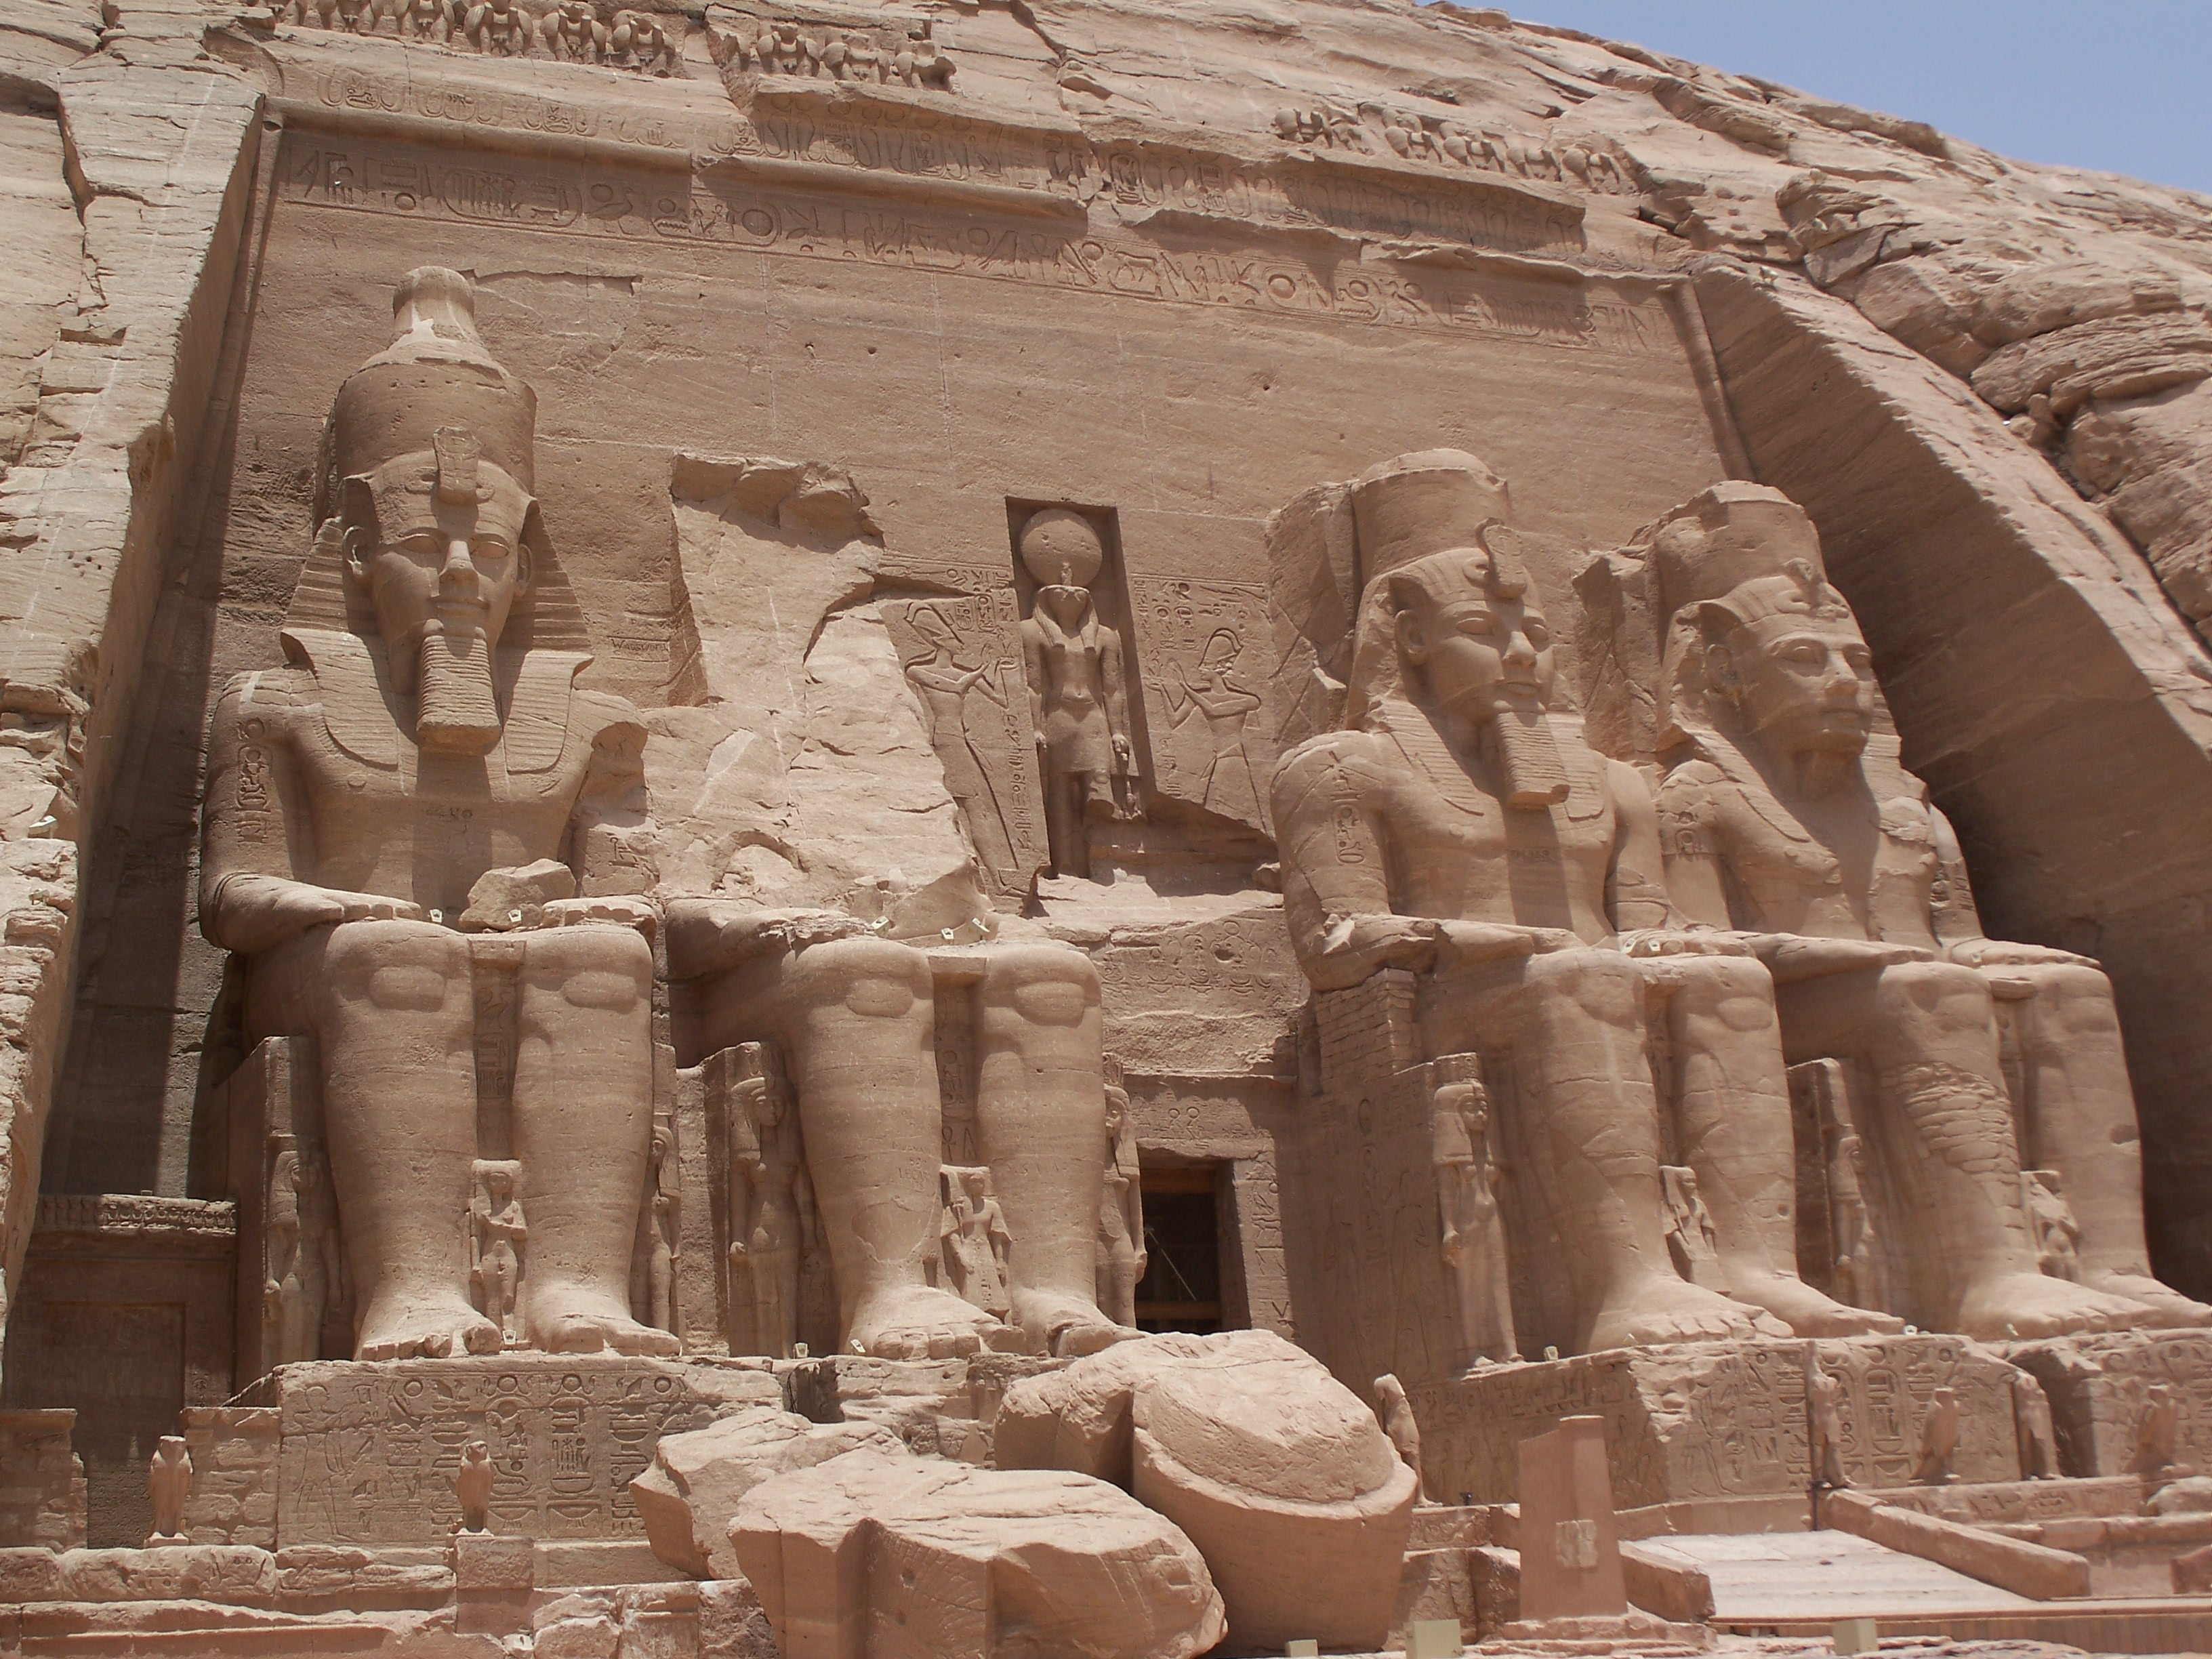 Abu_Simbel_Temple_May_30_2007.jpg